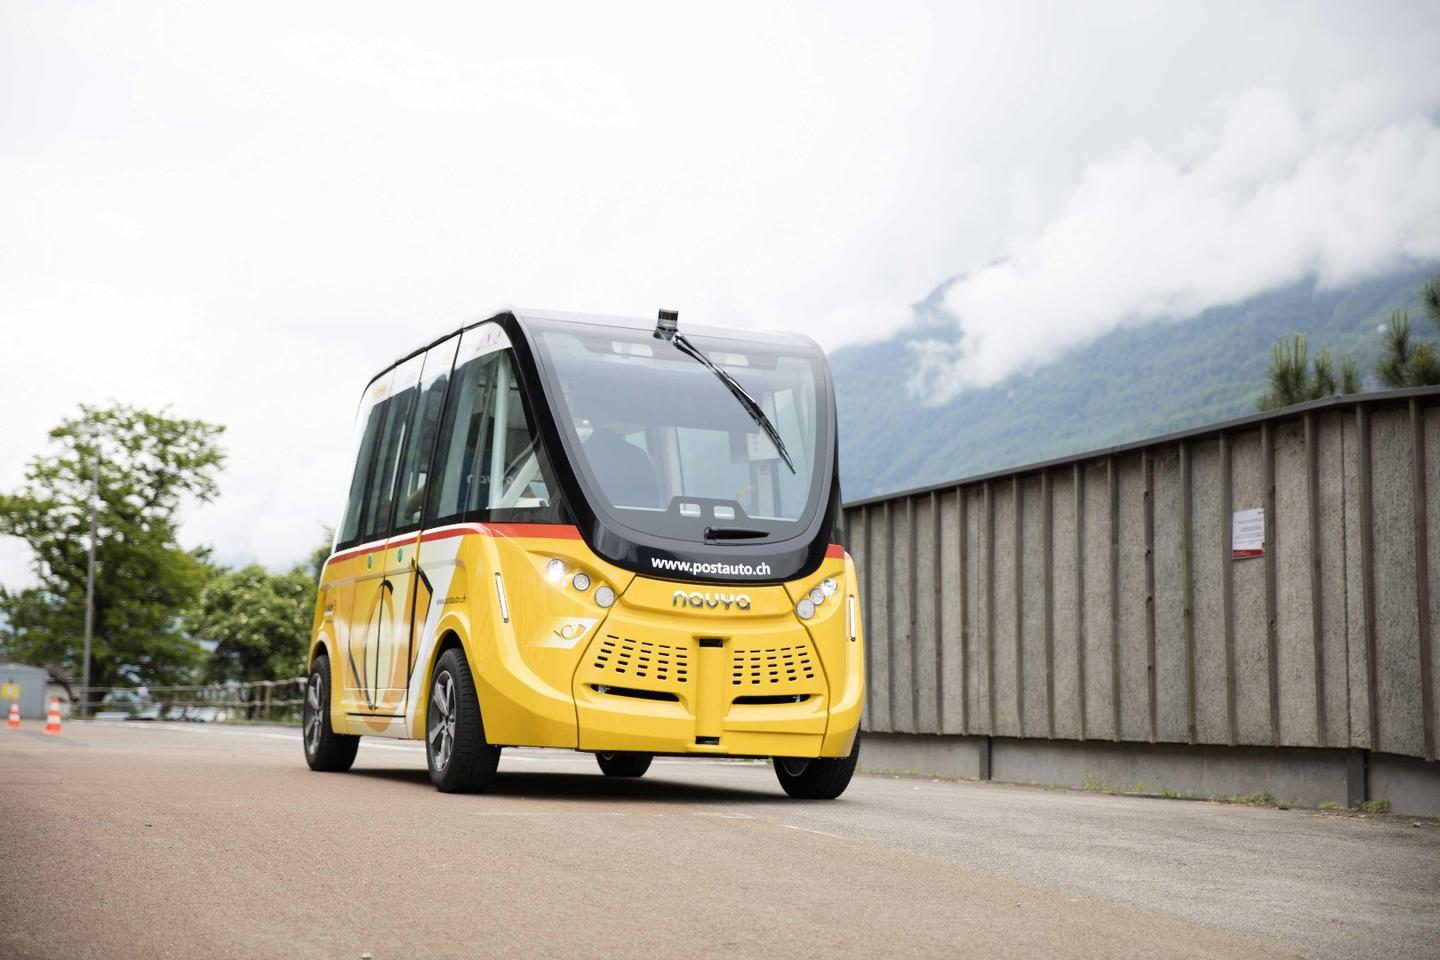 Twoautonomousbuses will follow a route along the edge of the city of 33,000 residents and pass through pedestrian areas